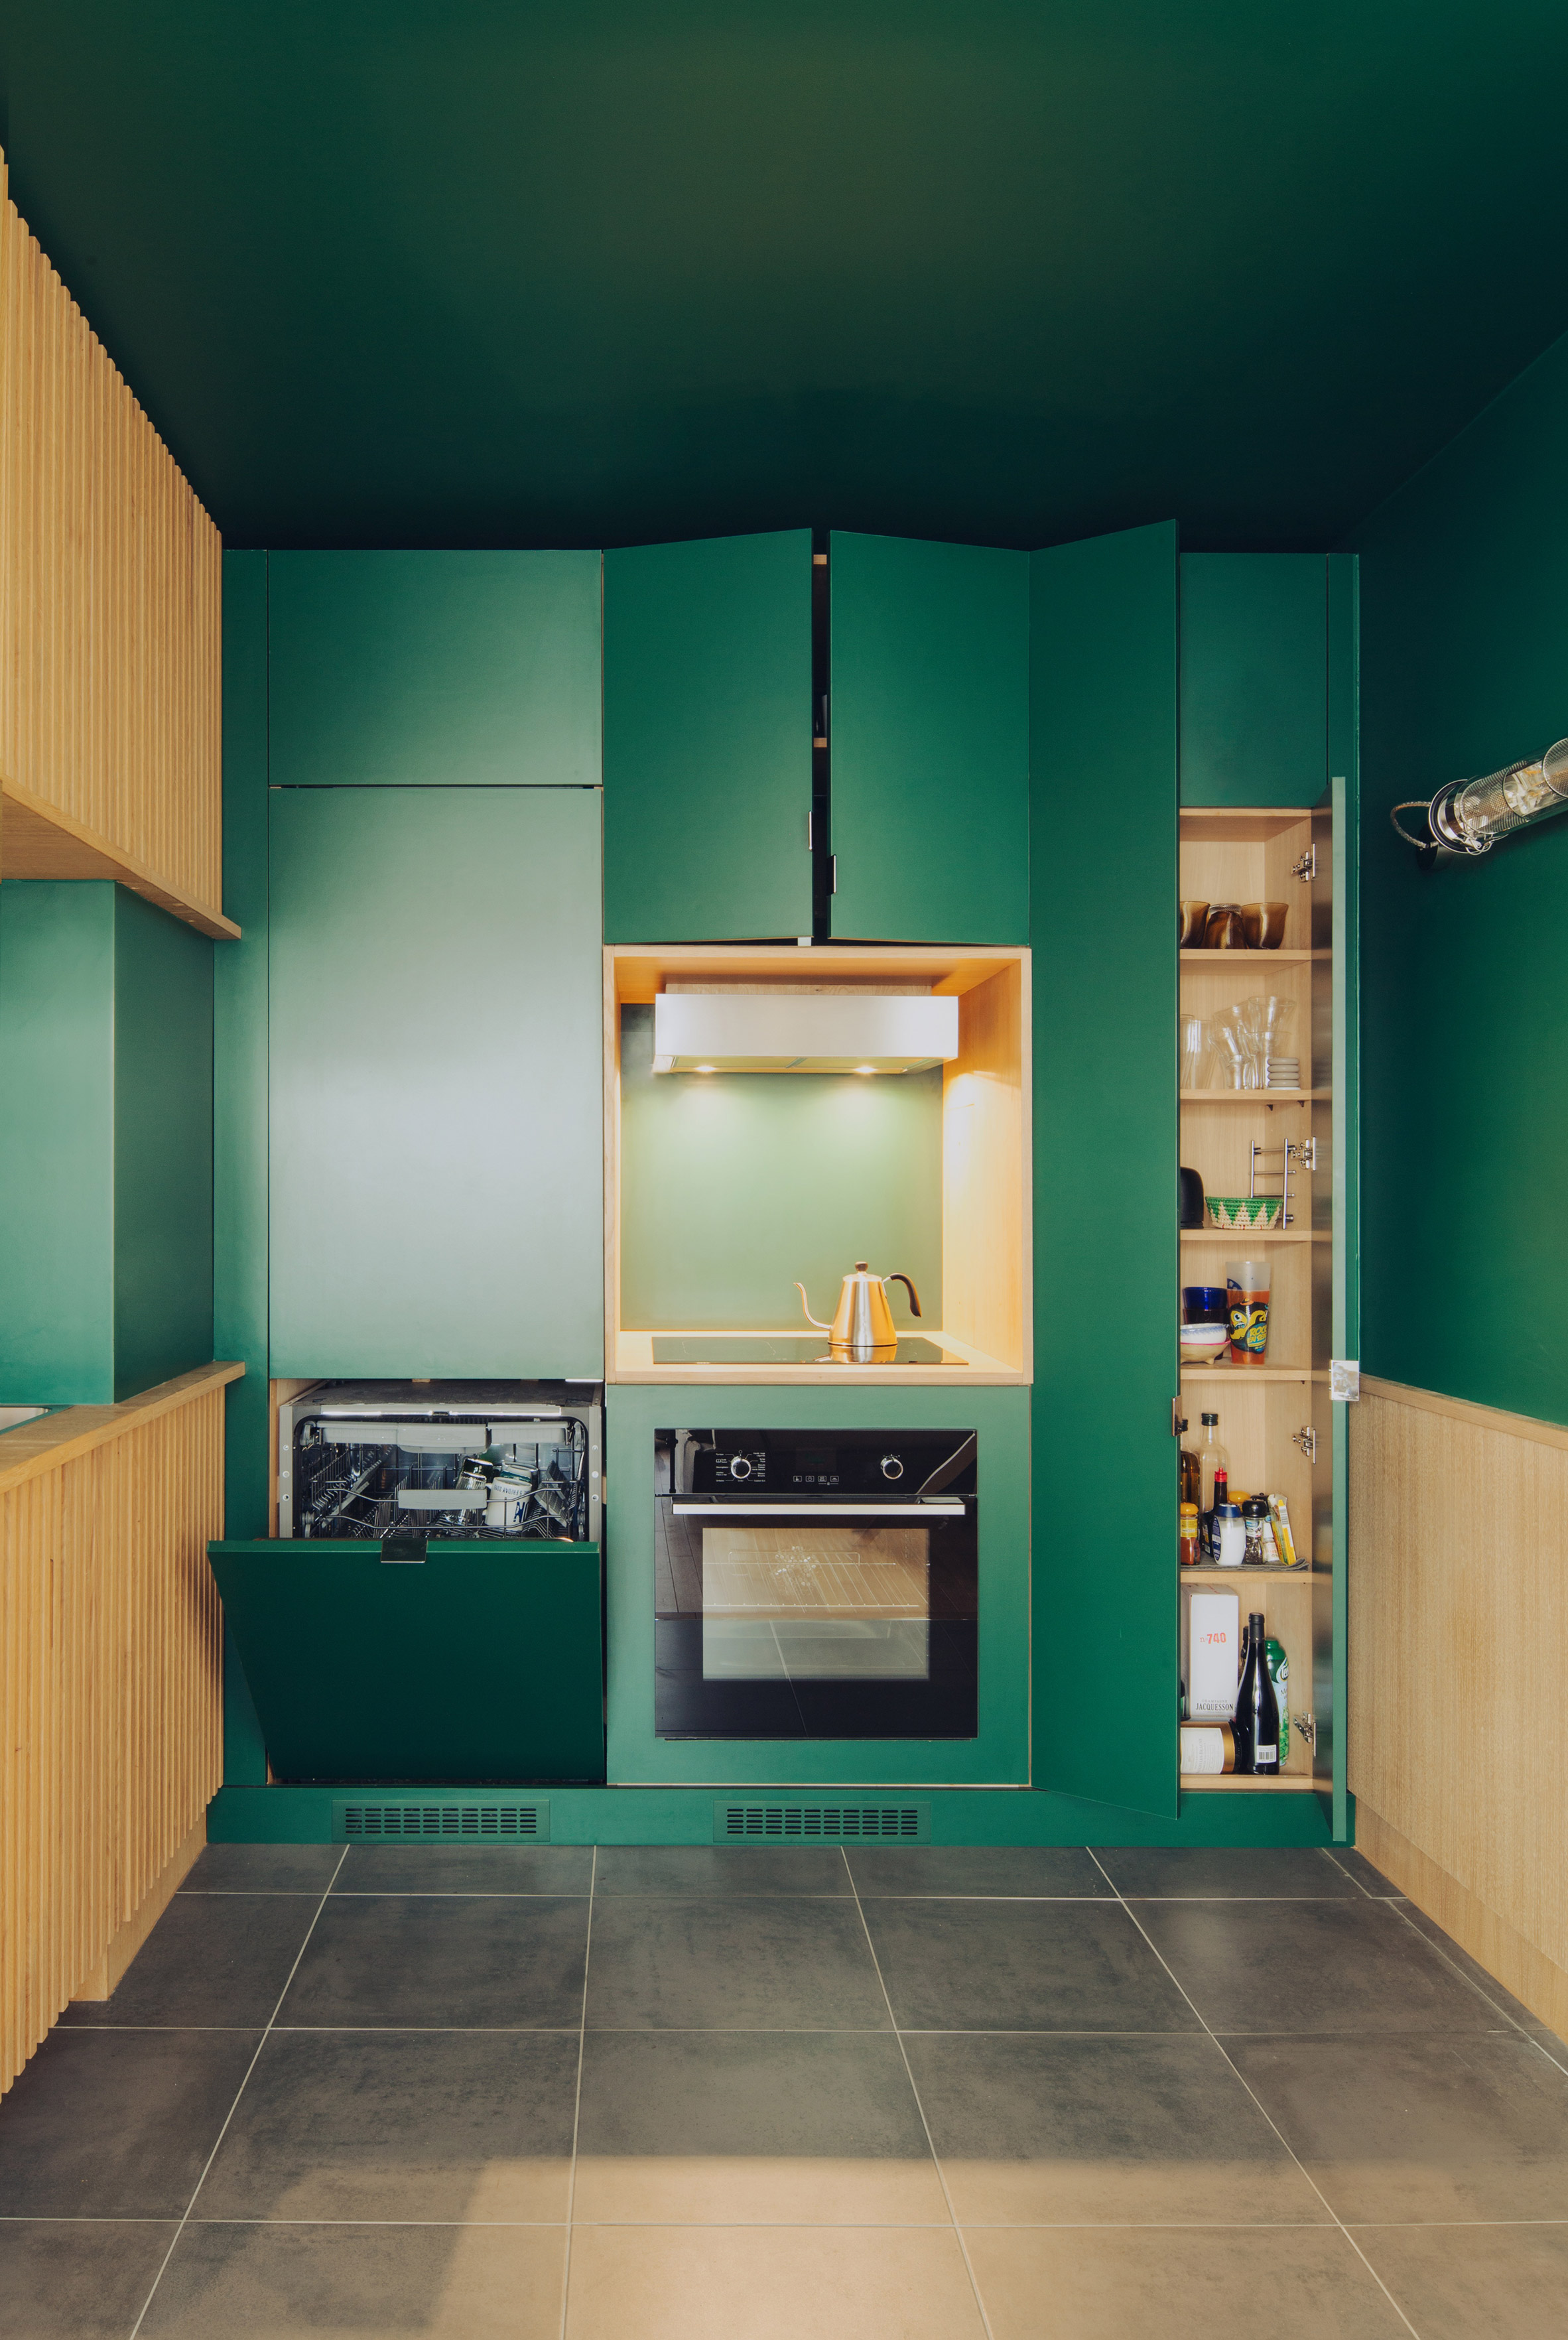 Paris apartment goes bold with green kitchen